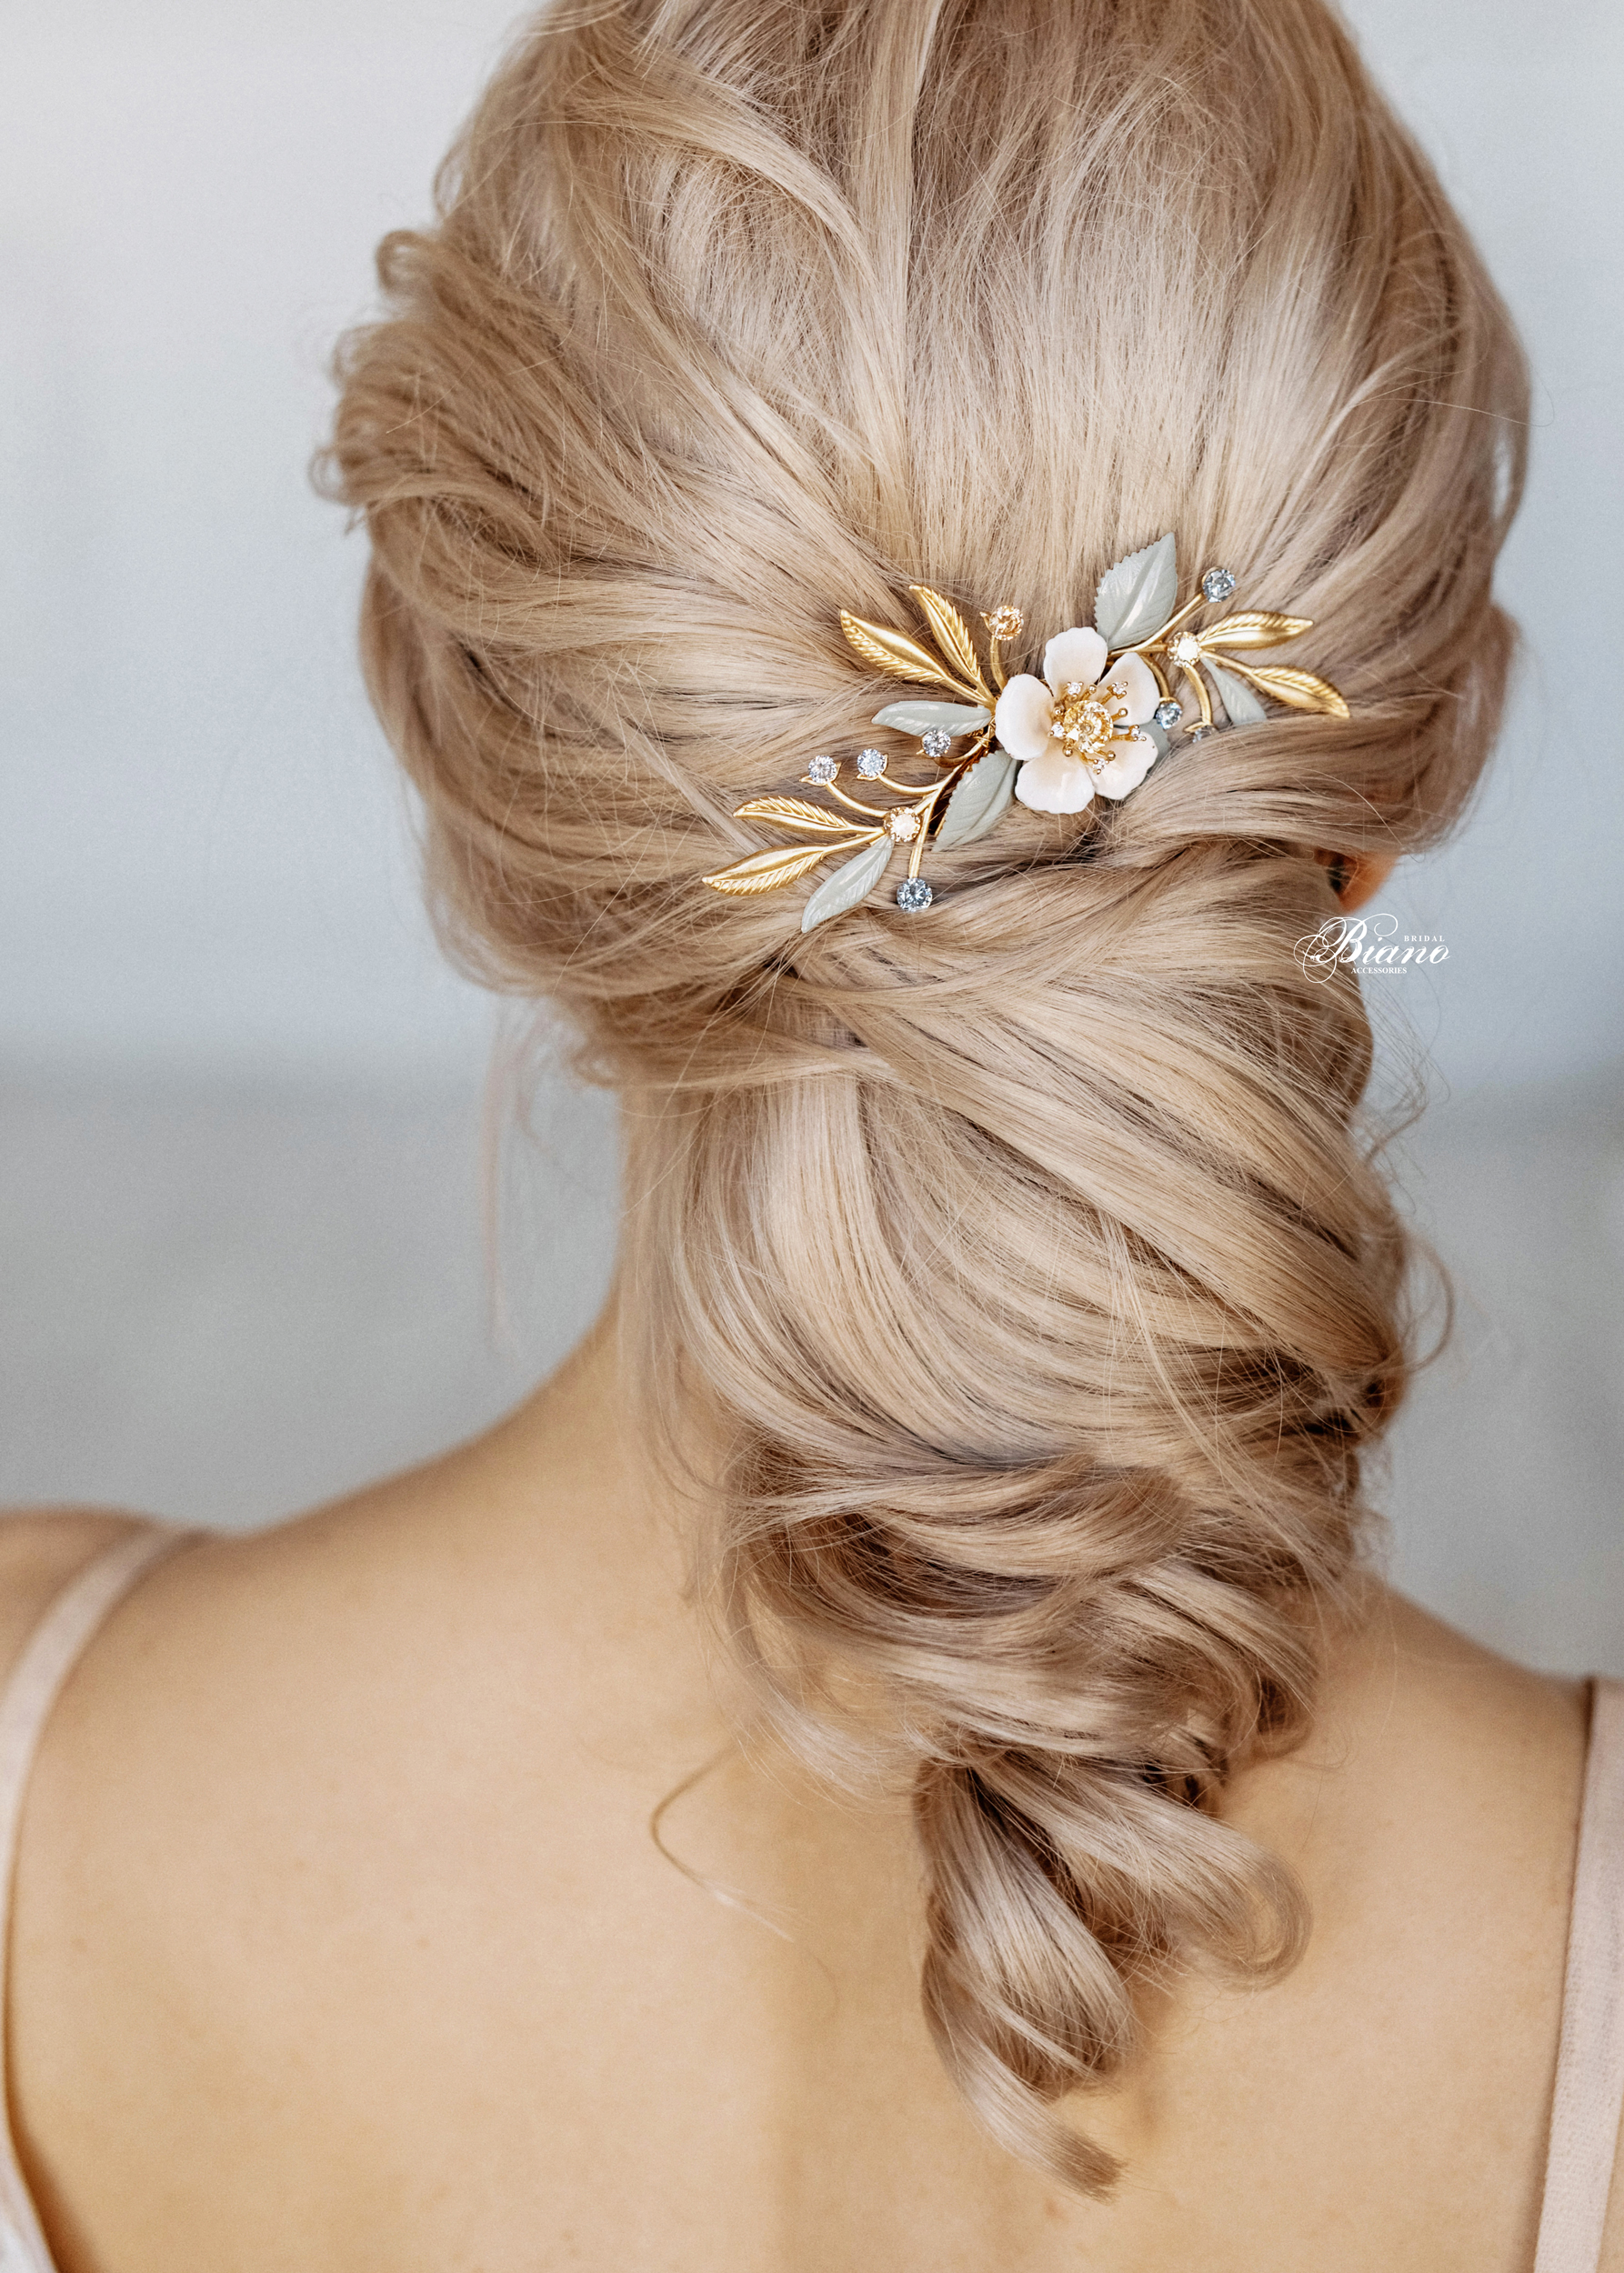 Find your perfect Hair Comb for Bride - Handmade in SwitzerlandUnique DesignPossibility to Rush OrdersFree Shipping WorldwideCustomisable OrdersFast response on your questions